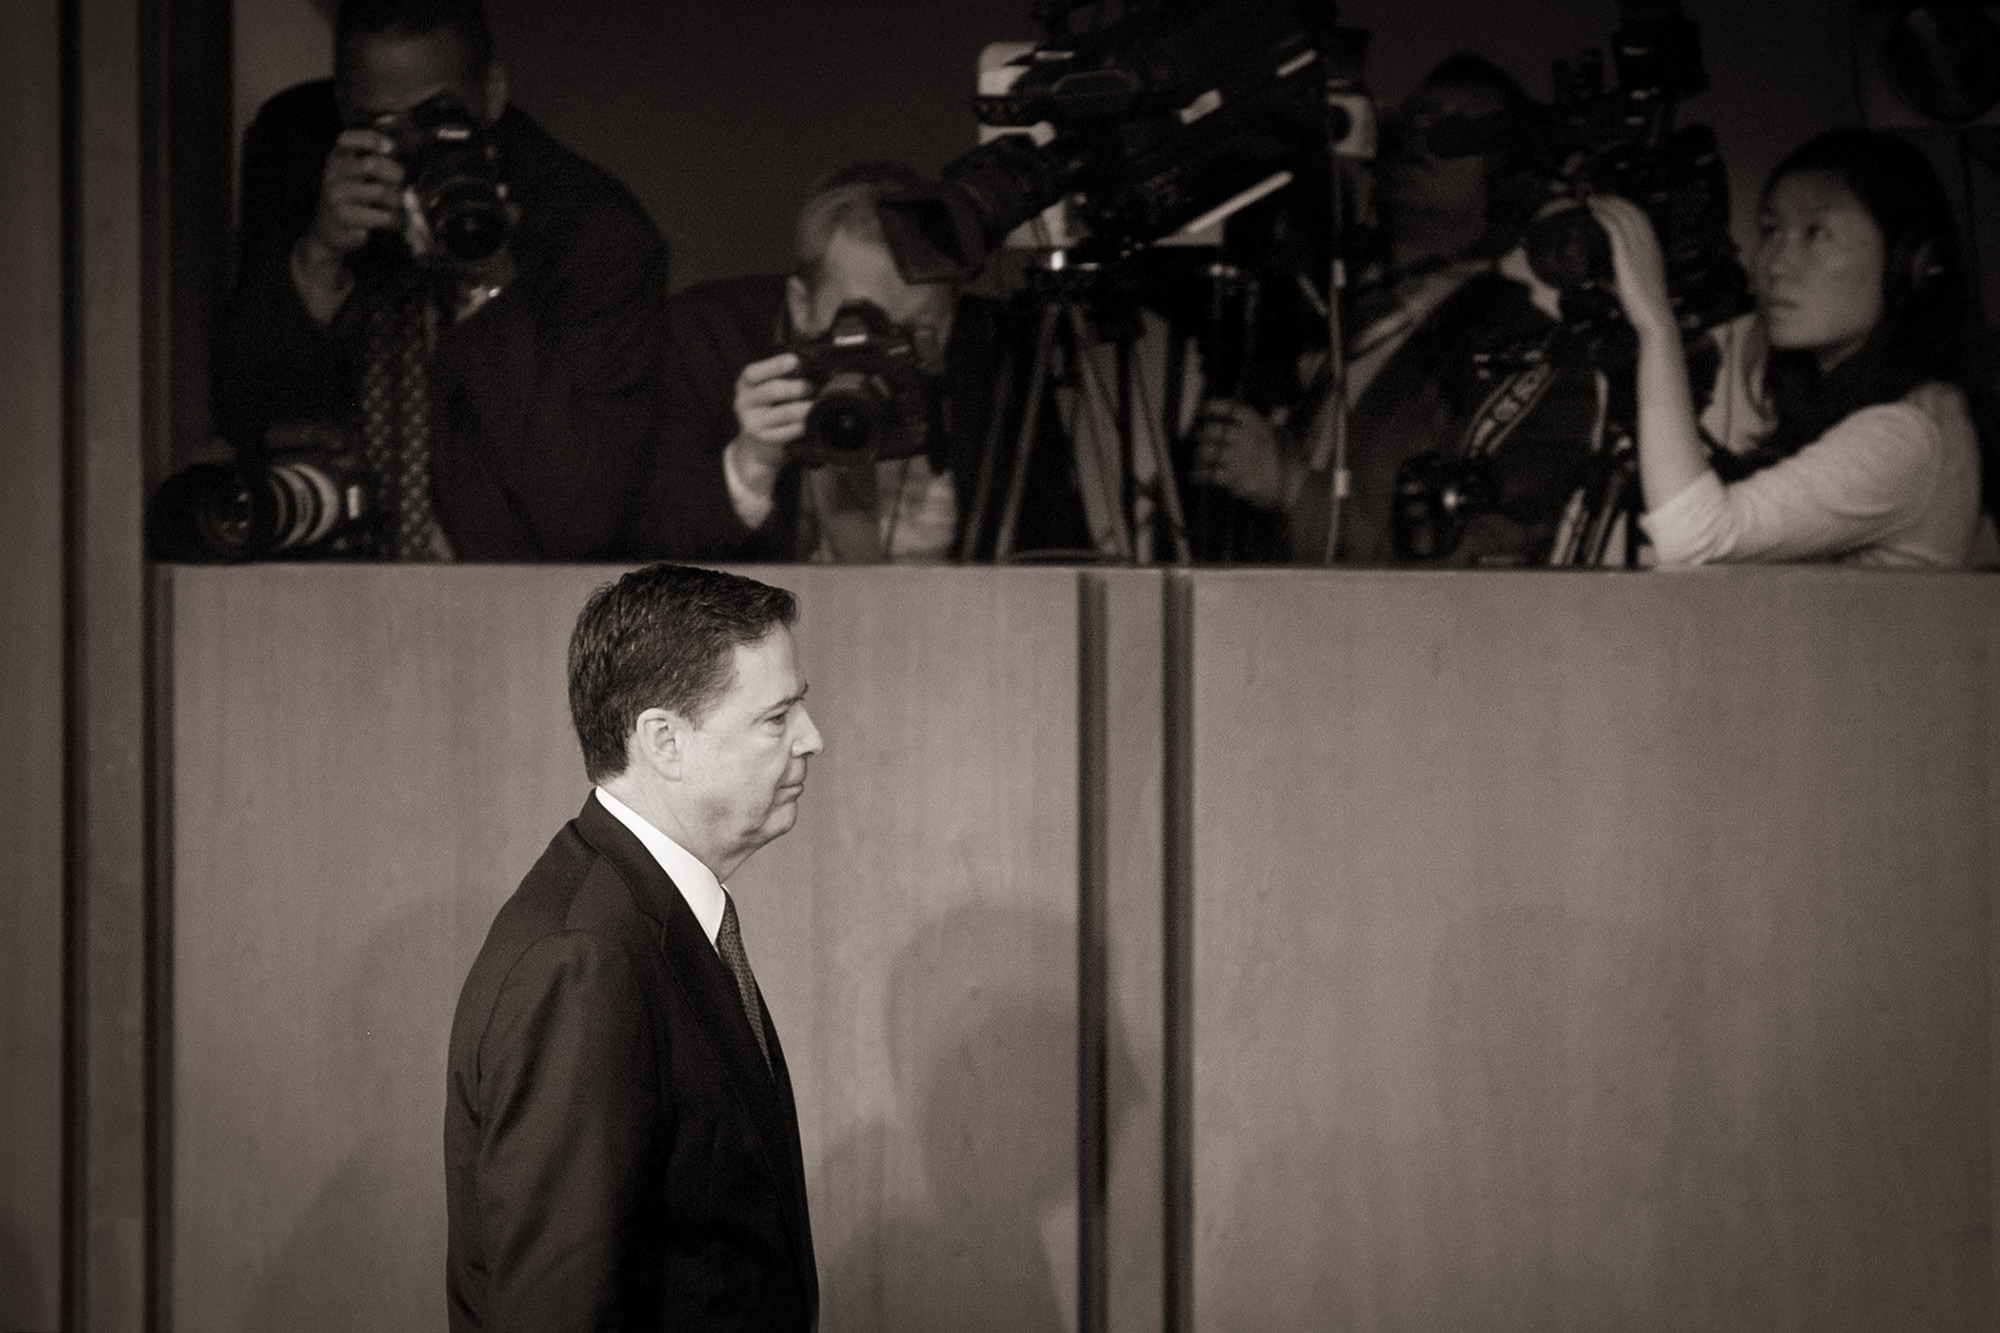 Former FBI director James Comey walks past the media and cameras after his testimony at the Senate Intelligence Committee, where he said the White House lied about why he was fired and that he leaked his own memos to the press on his interactions with President Donald Trump, in Washington, D.C., on June 8, 2017.